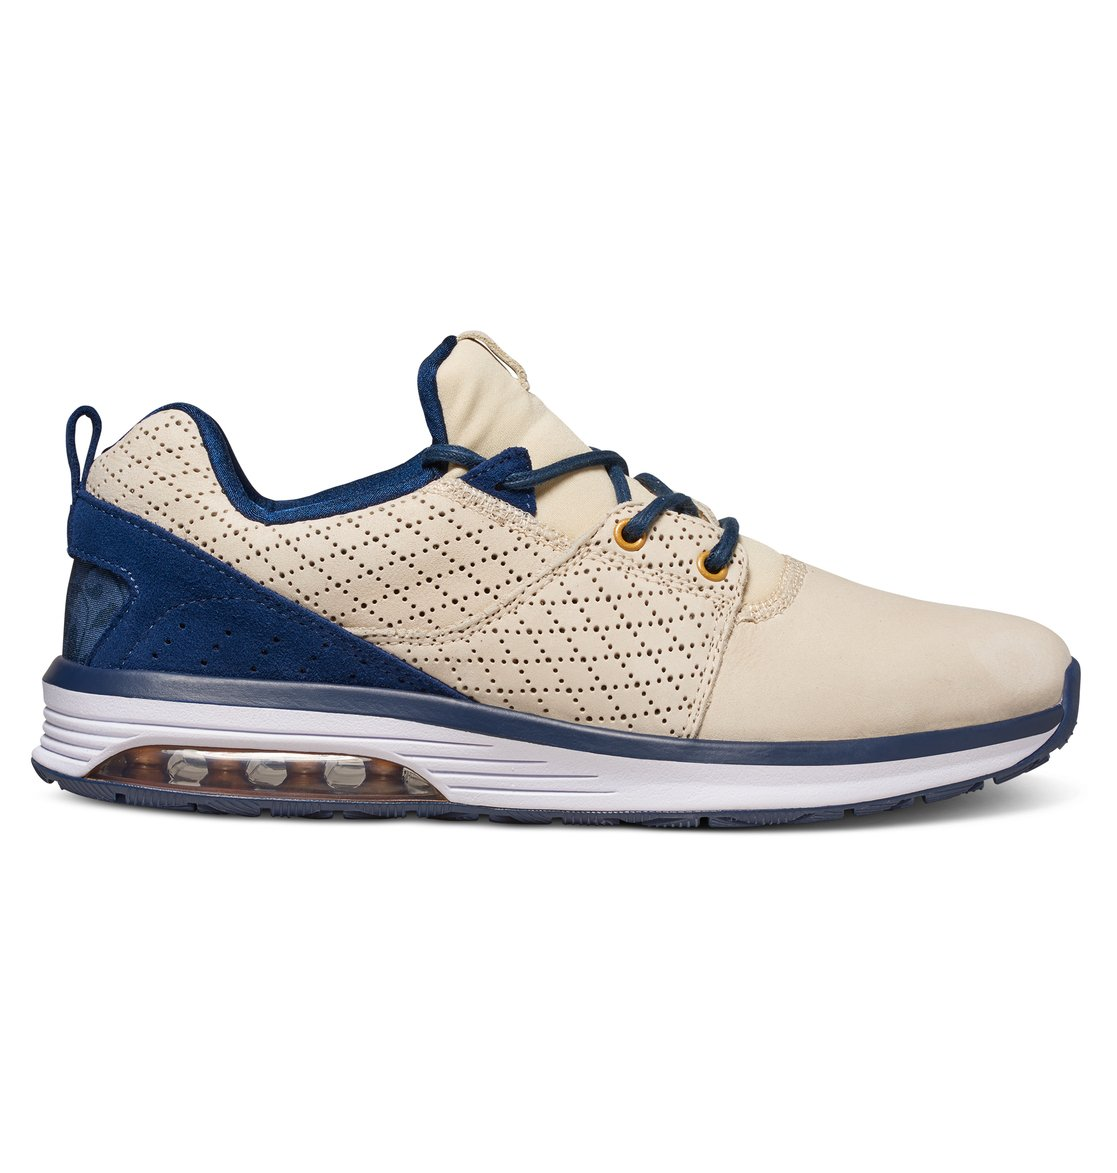 DC Shoes Heathrow - Shoes - Chaussures - Homme